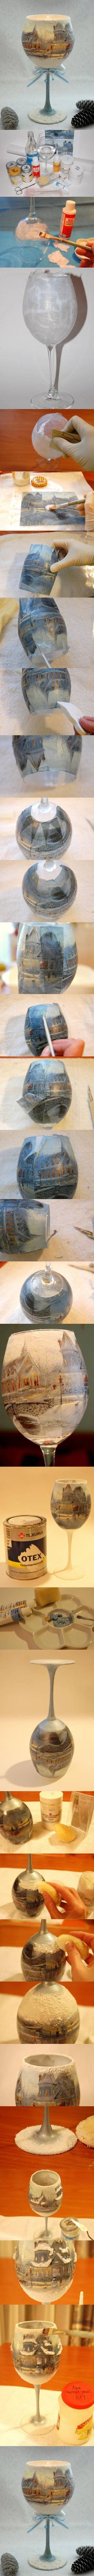 DIY Floating Candle Candlestick Pictures, Photos, and Images for Facebook, Tumblr, Pinterest, and Twitter